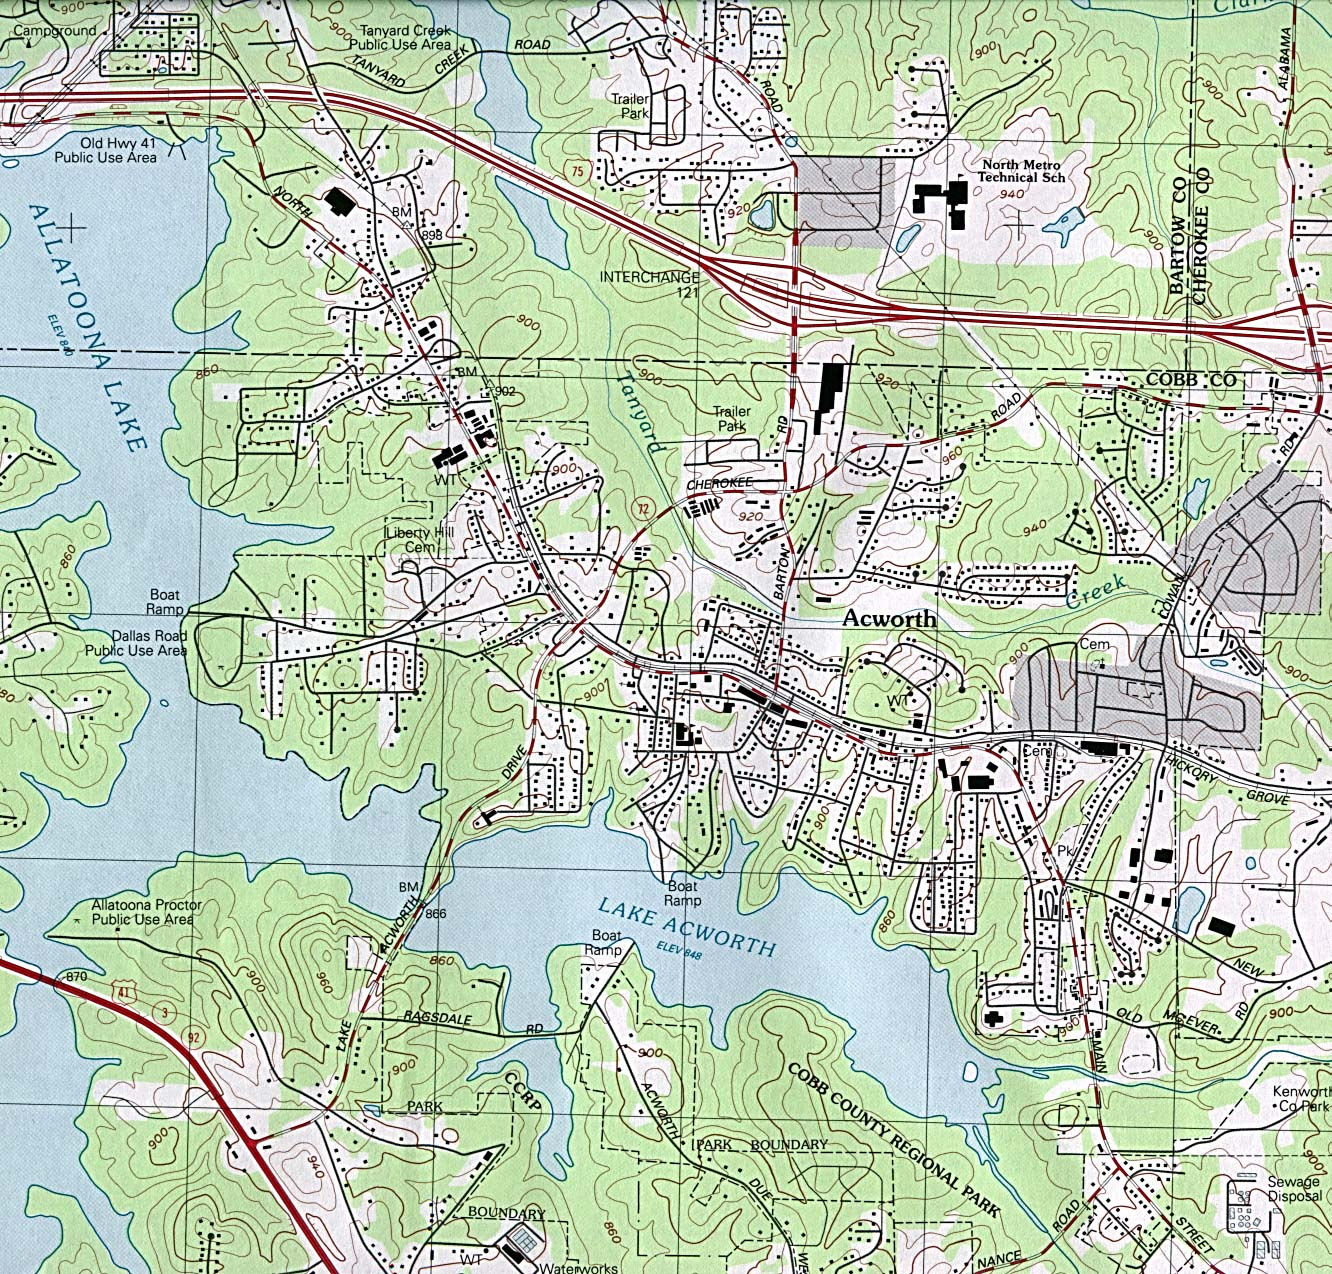 Georgia Maps PerryCastañeda Map Collection UT Library Online - Georgia highway map